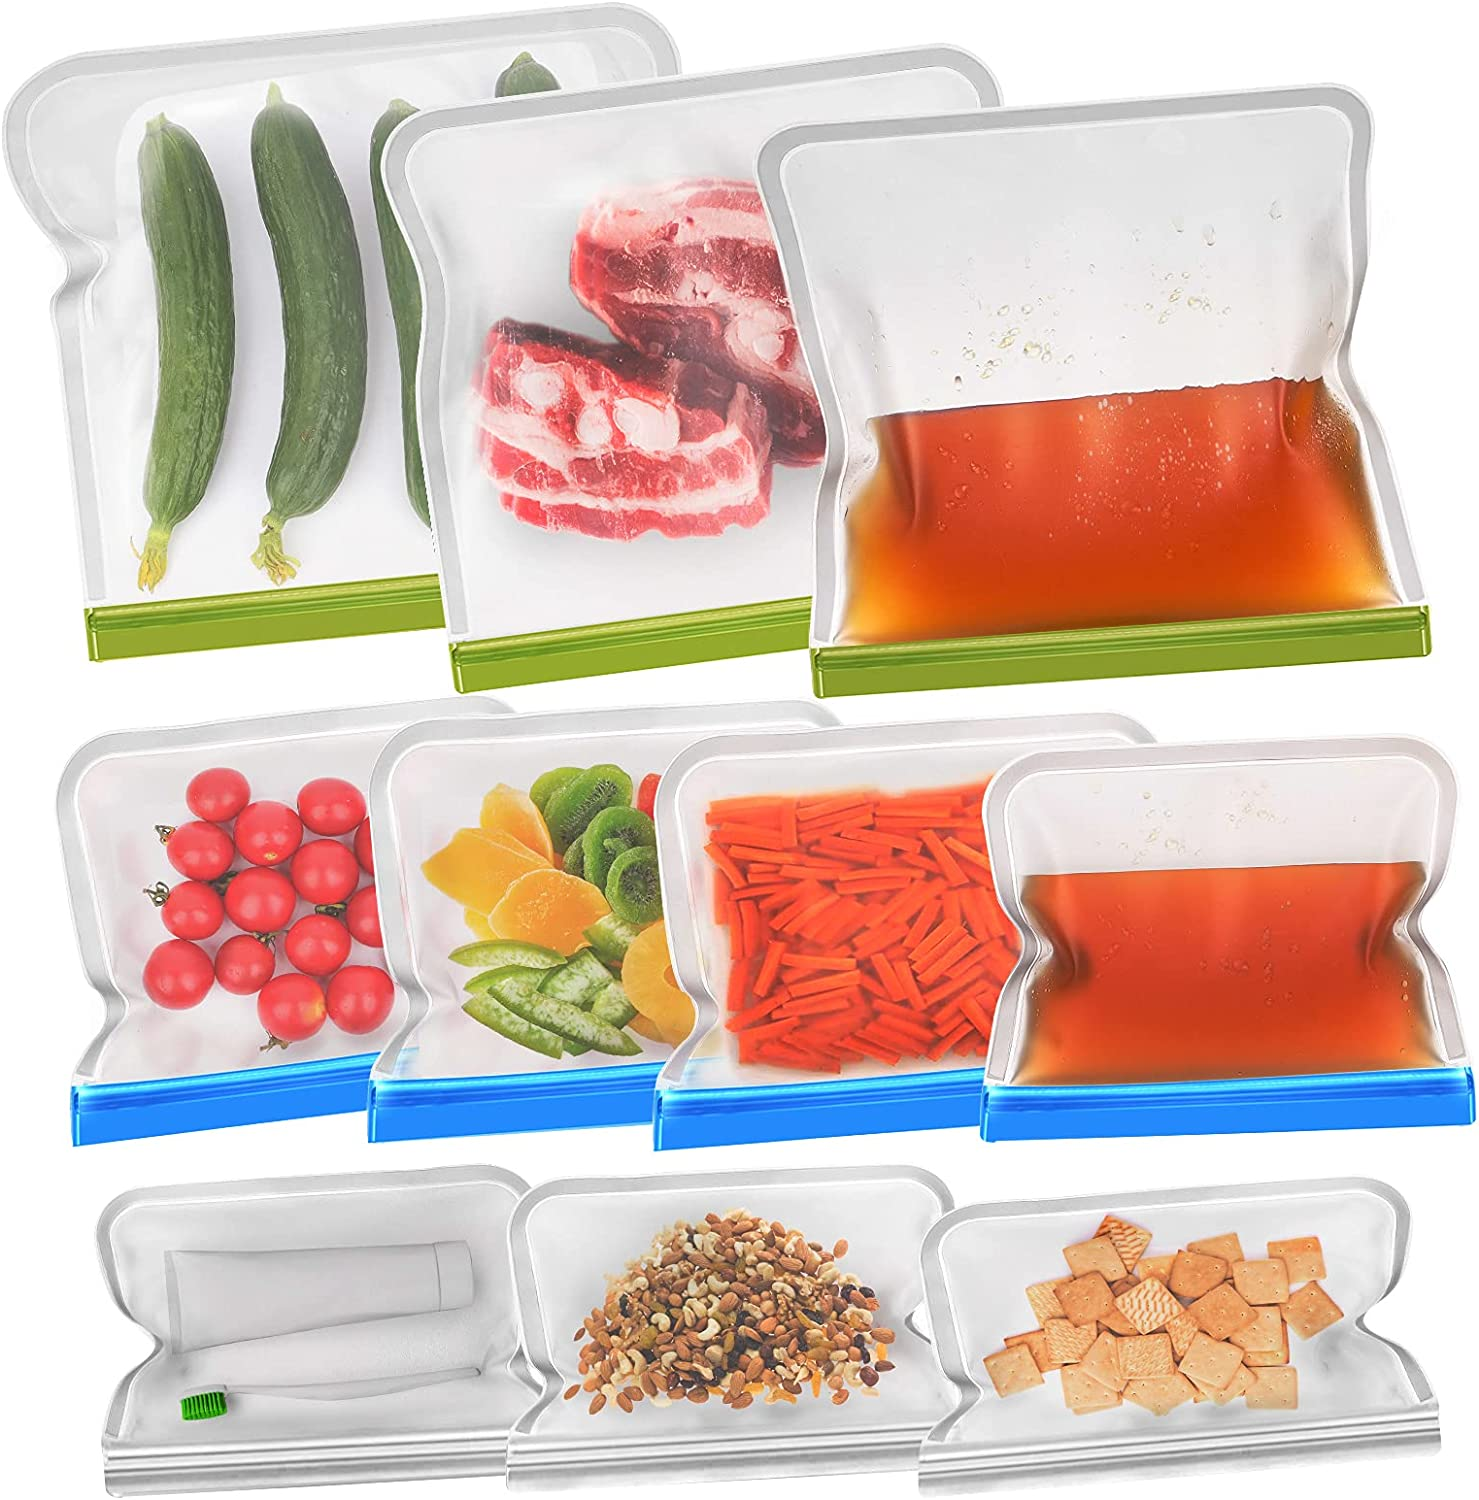 Reusable Food Storage Bags - 10 Pack EXTRA THICK BPA FREE Reusable Freezer Bags - 3 Reusable Gallon Freezer Bags + 4 Leak Proof Reusable Sandwich Bags + 3 Food Grade Kids Snack Bags